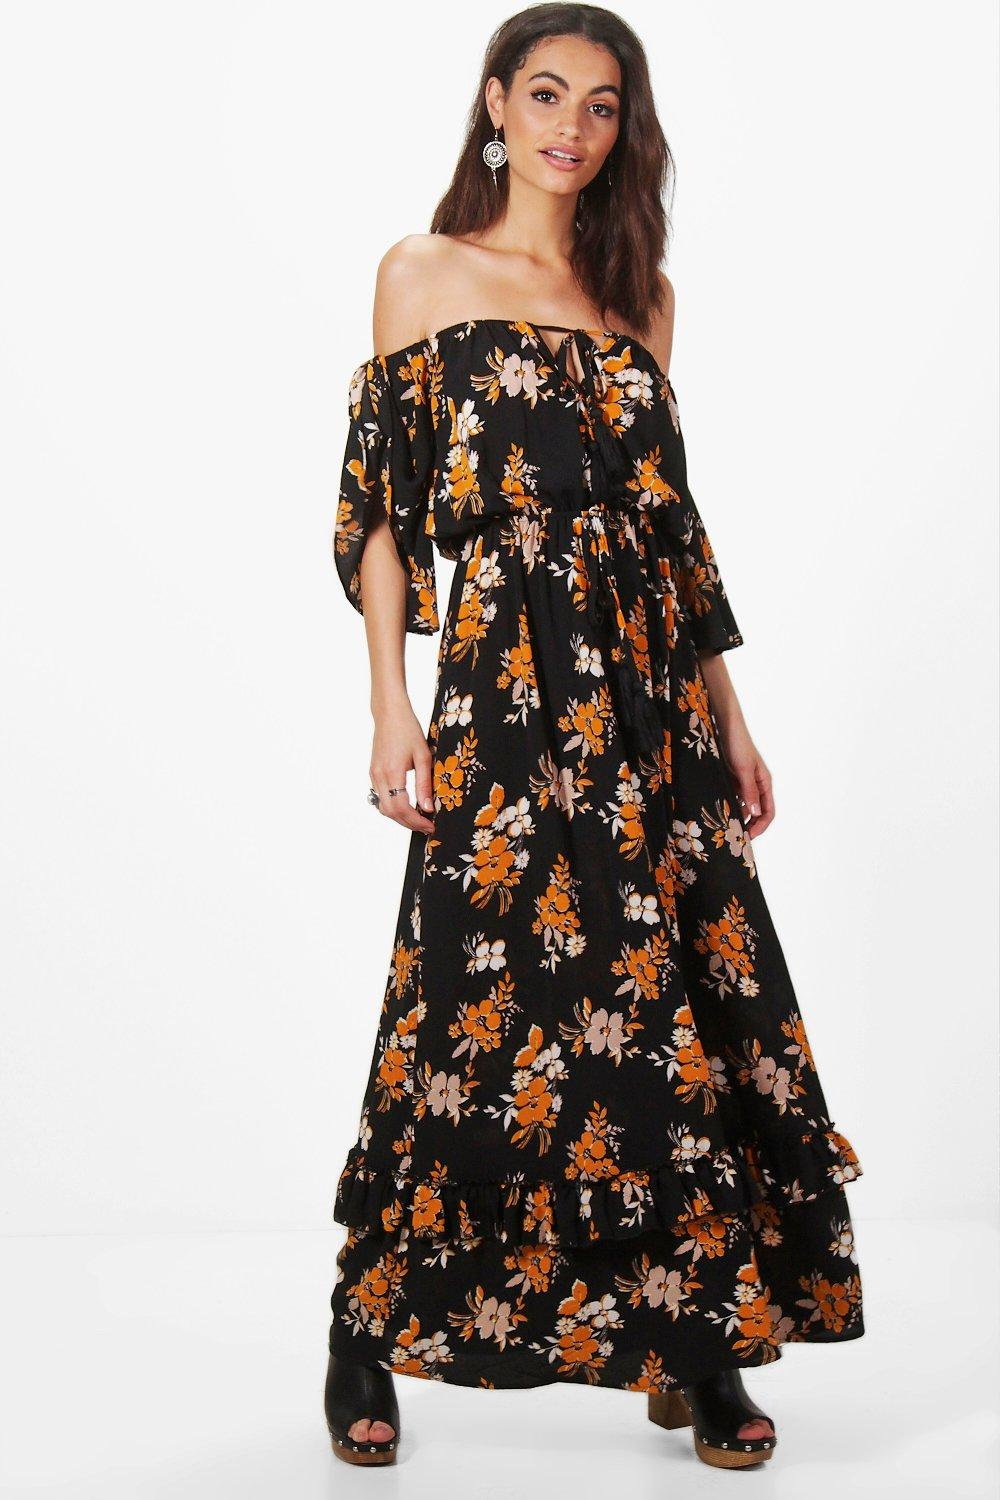 0b9dd414a96 Womens Black Hollie Floral Off Shoulder Ruffle Maxi Dress. Hover to zoom